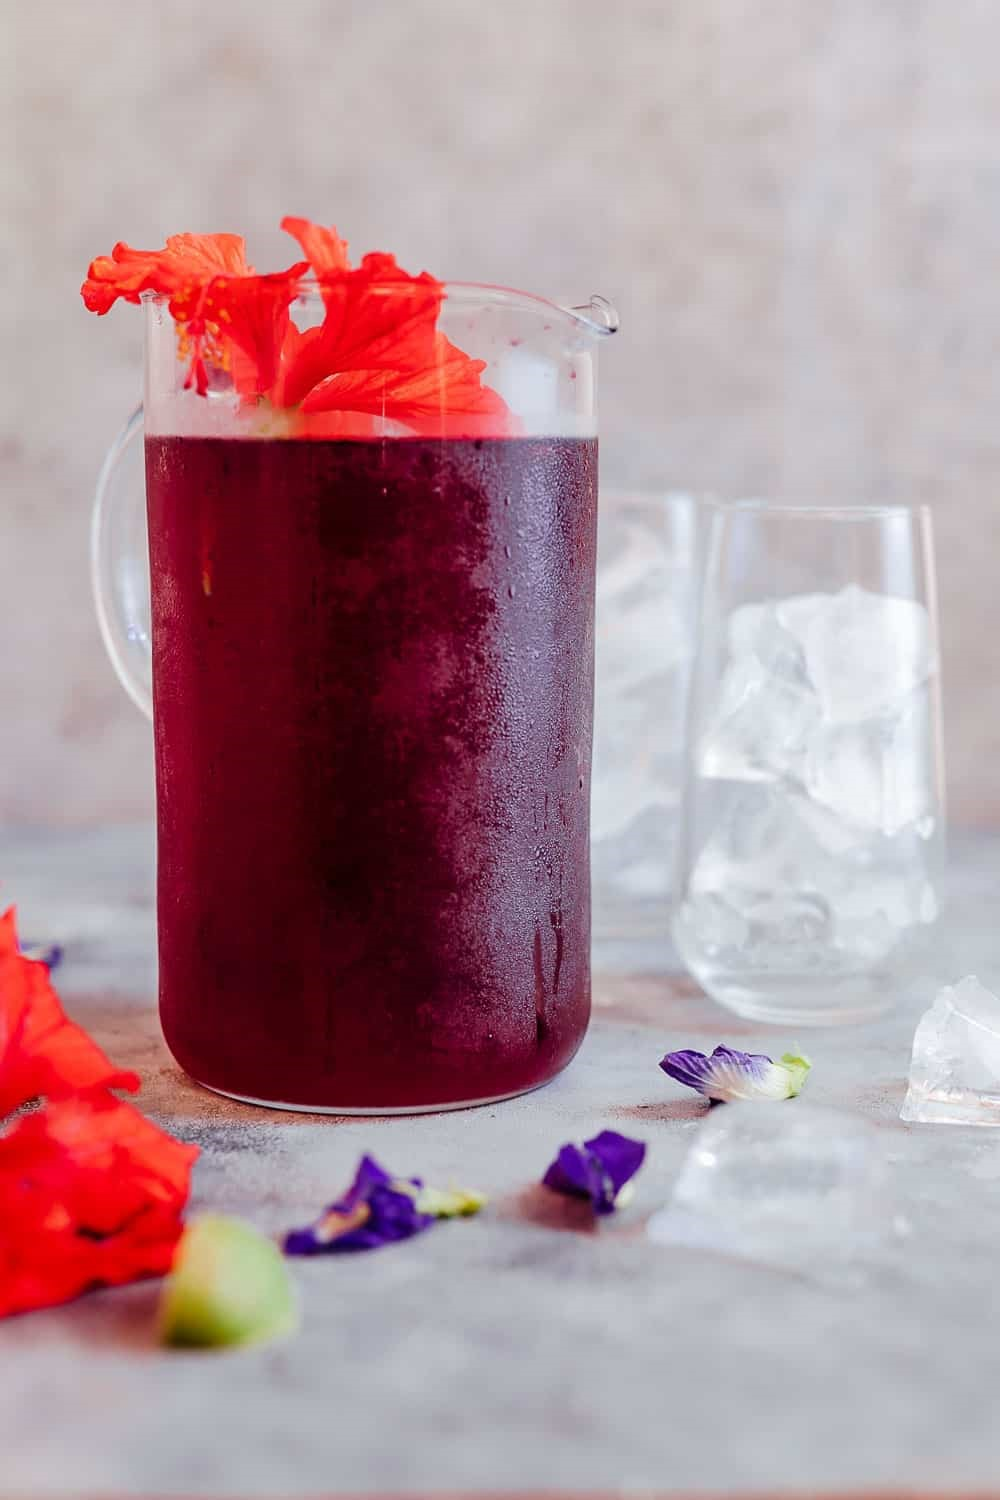 Learn how to make hibiscus tea which has some amazing benefits. Make this with either fresh or dried flowers and choose to have it as a hot cup of tea or as hibiscus iced tea because either way it's delicious and really good for you!